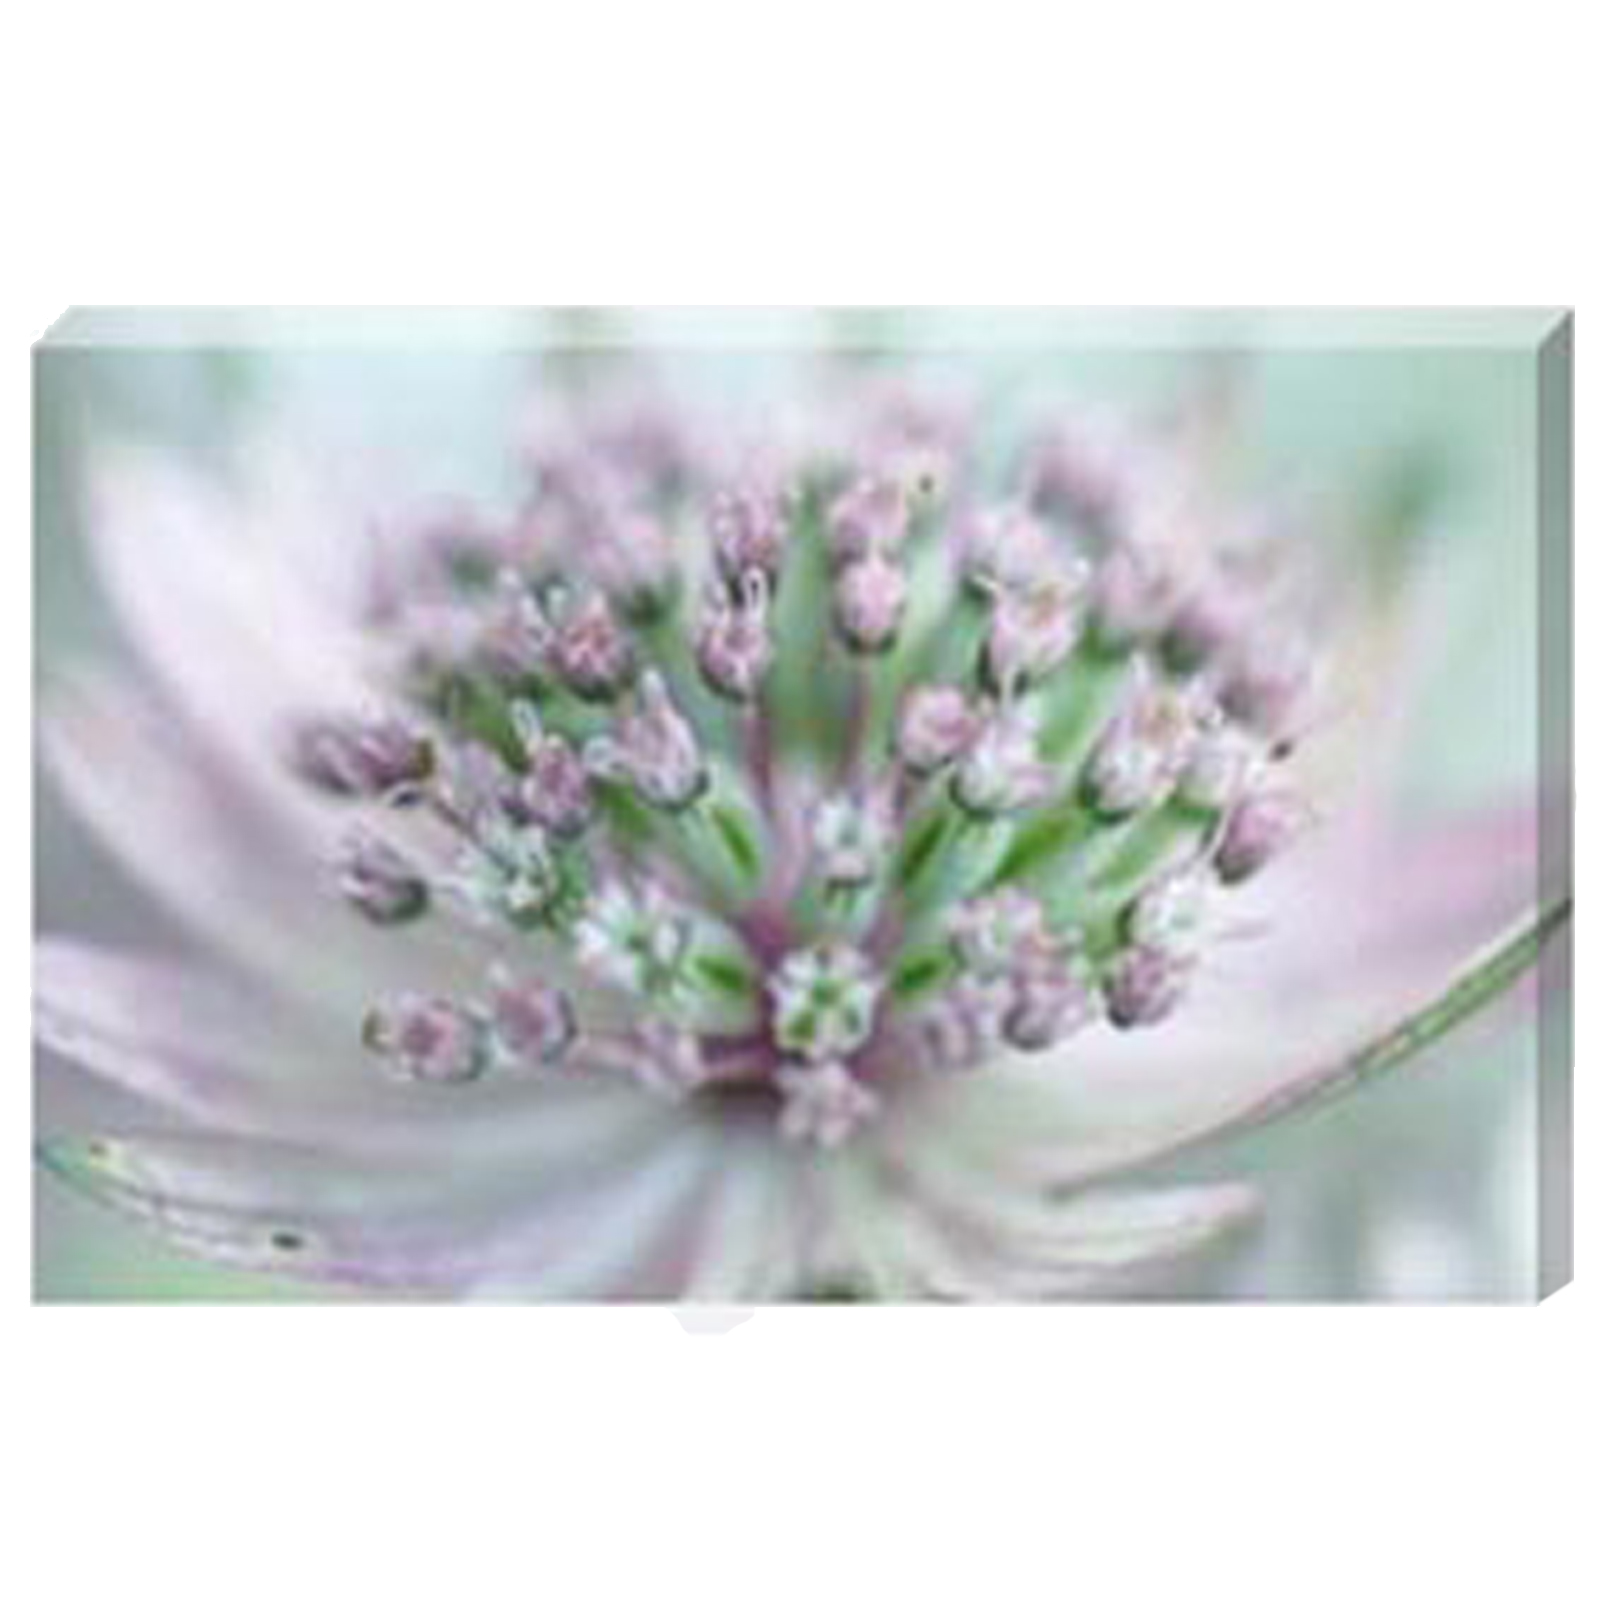 Astrantia IV - Stretched Canvas by Celia Henderson LRPS